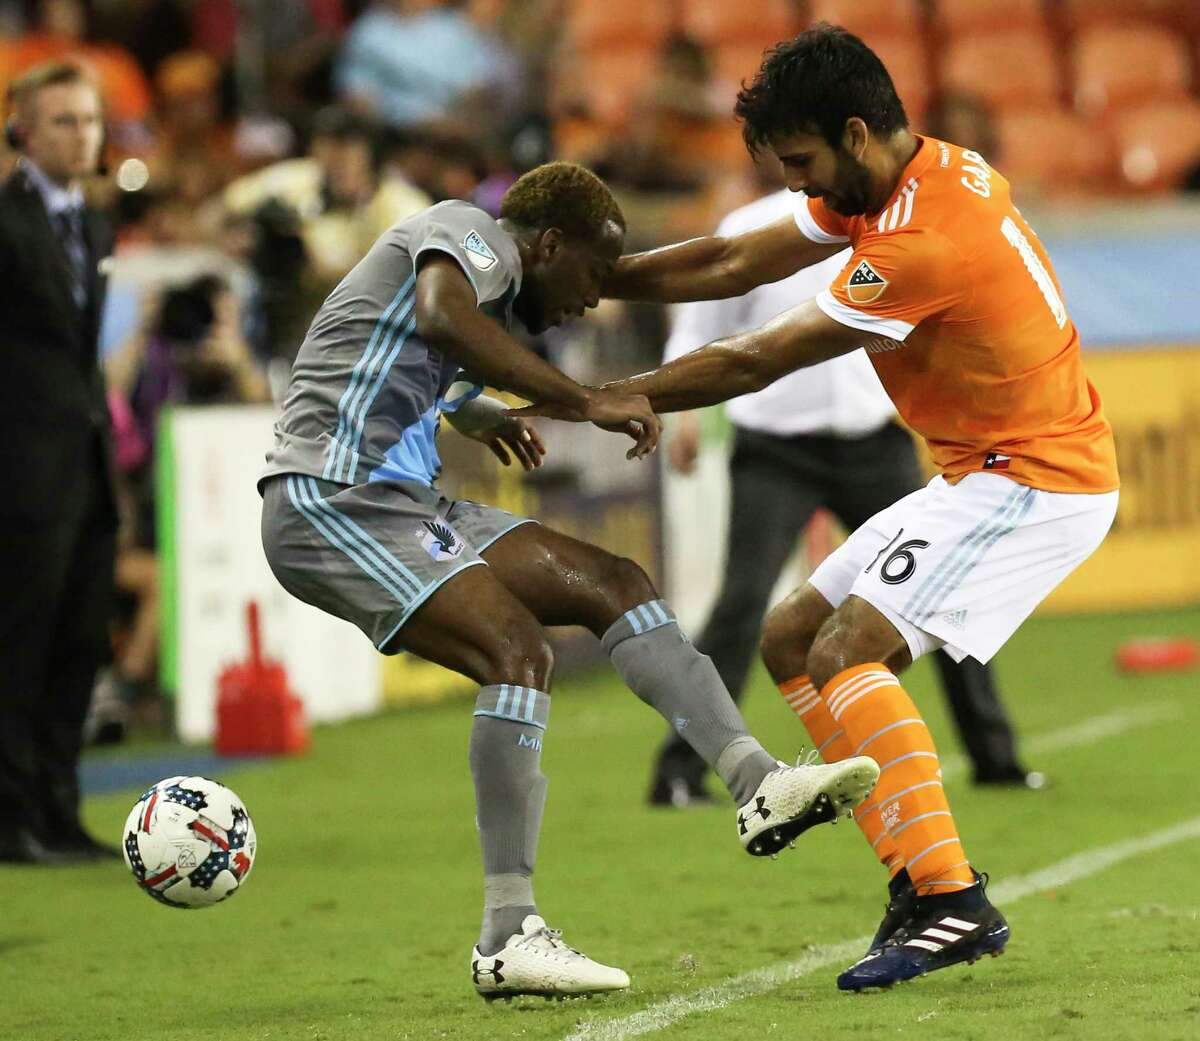 Houston Dynamo defender Kevin Garcia (16) battles with Minnesota United midfielder Kevin Molino (18) along the sideline during the second half of the game at BBVA Compass Stadium Saturday, April 15, 2017, in Houston.